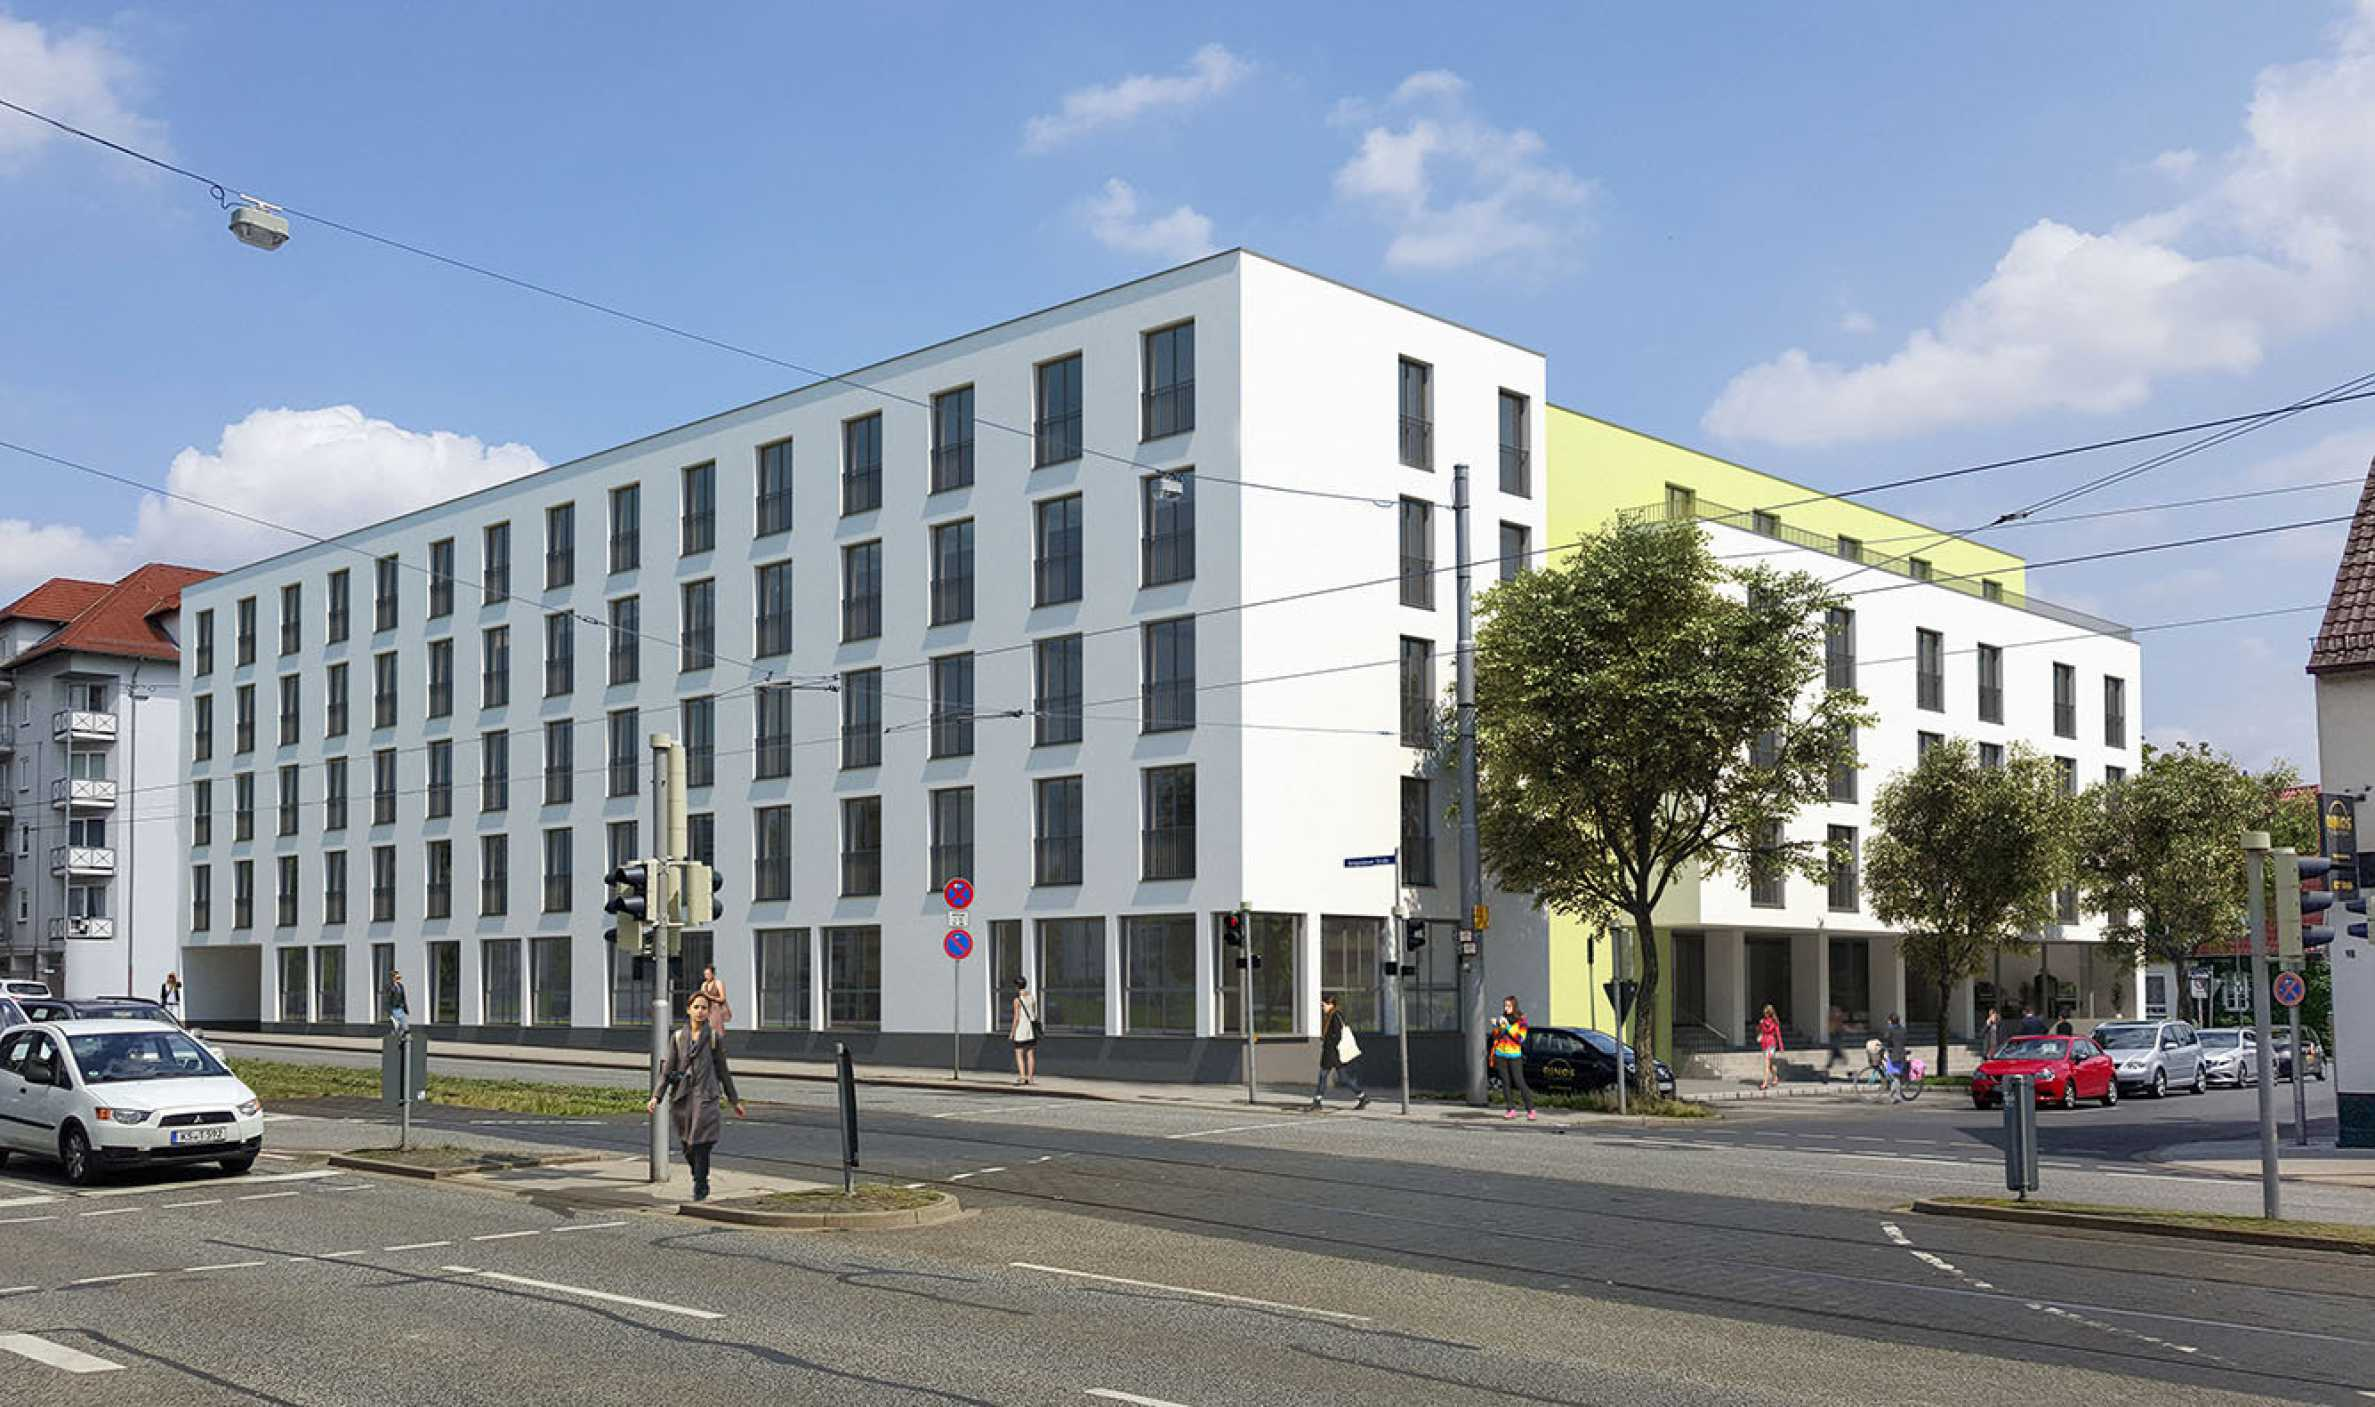 Student apartments near the University of Kassel1 - Stonehard